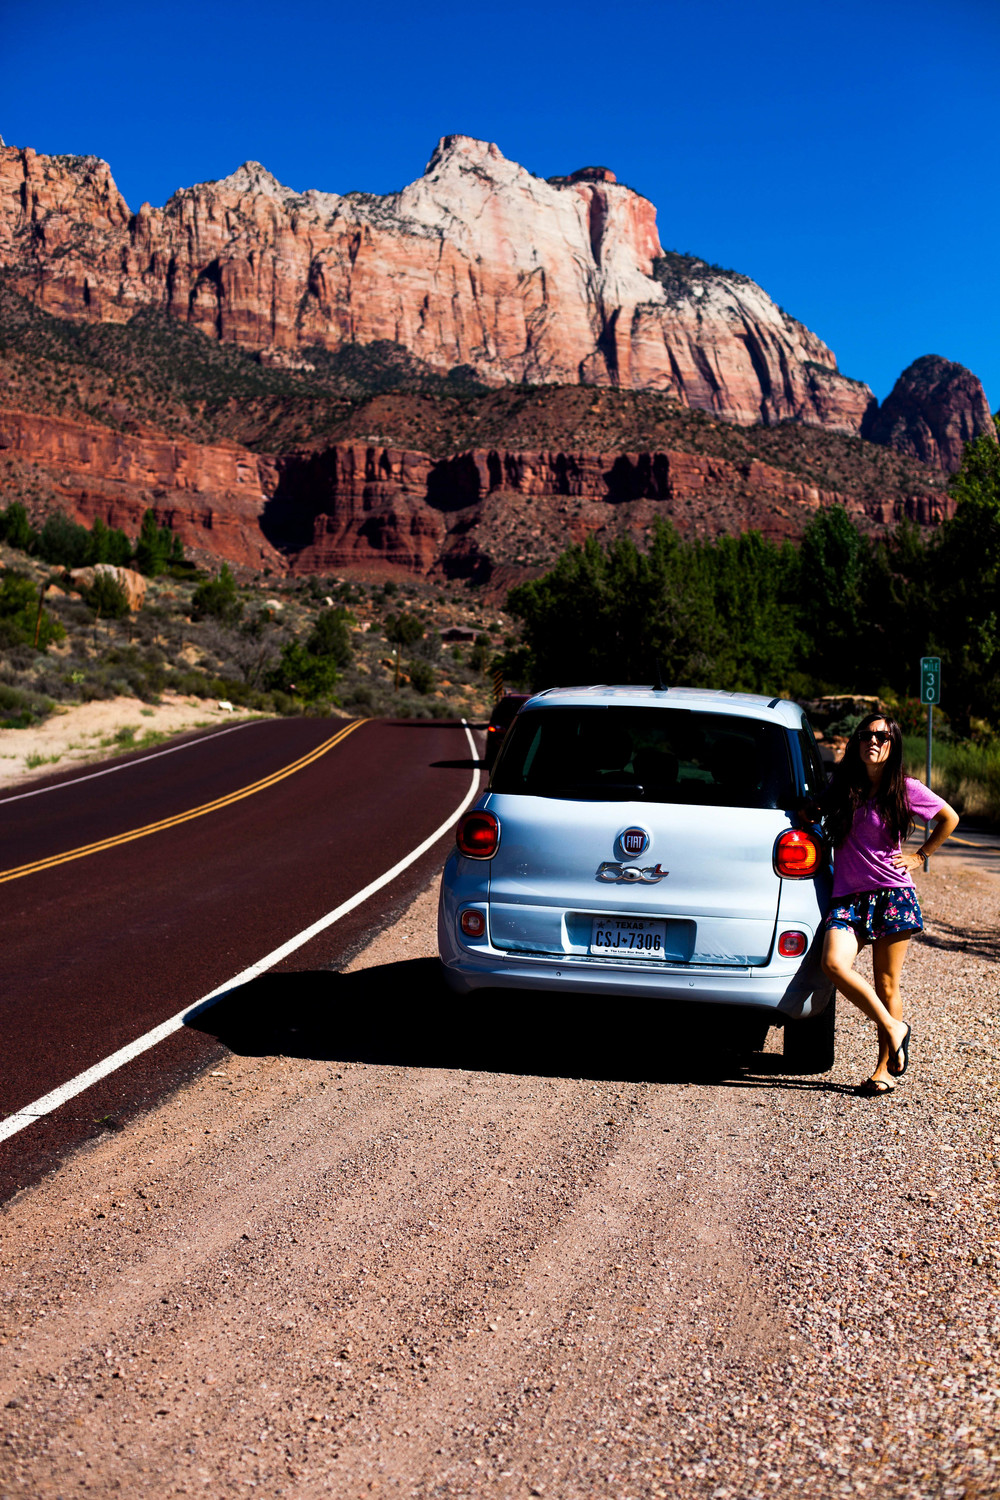 Utah_canyons_roadtrip-11.jpg